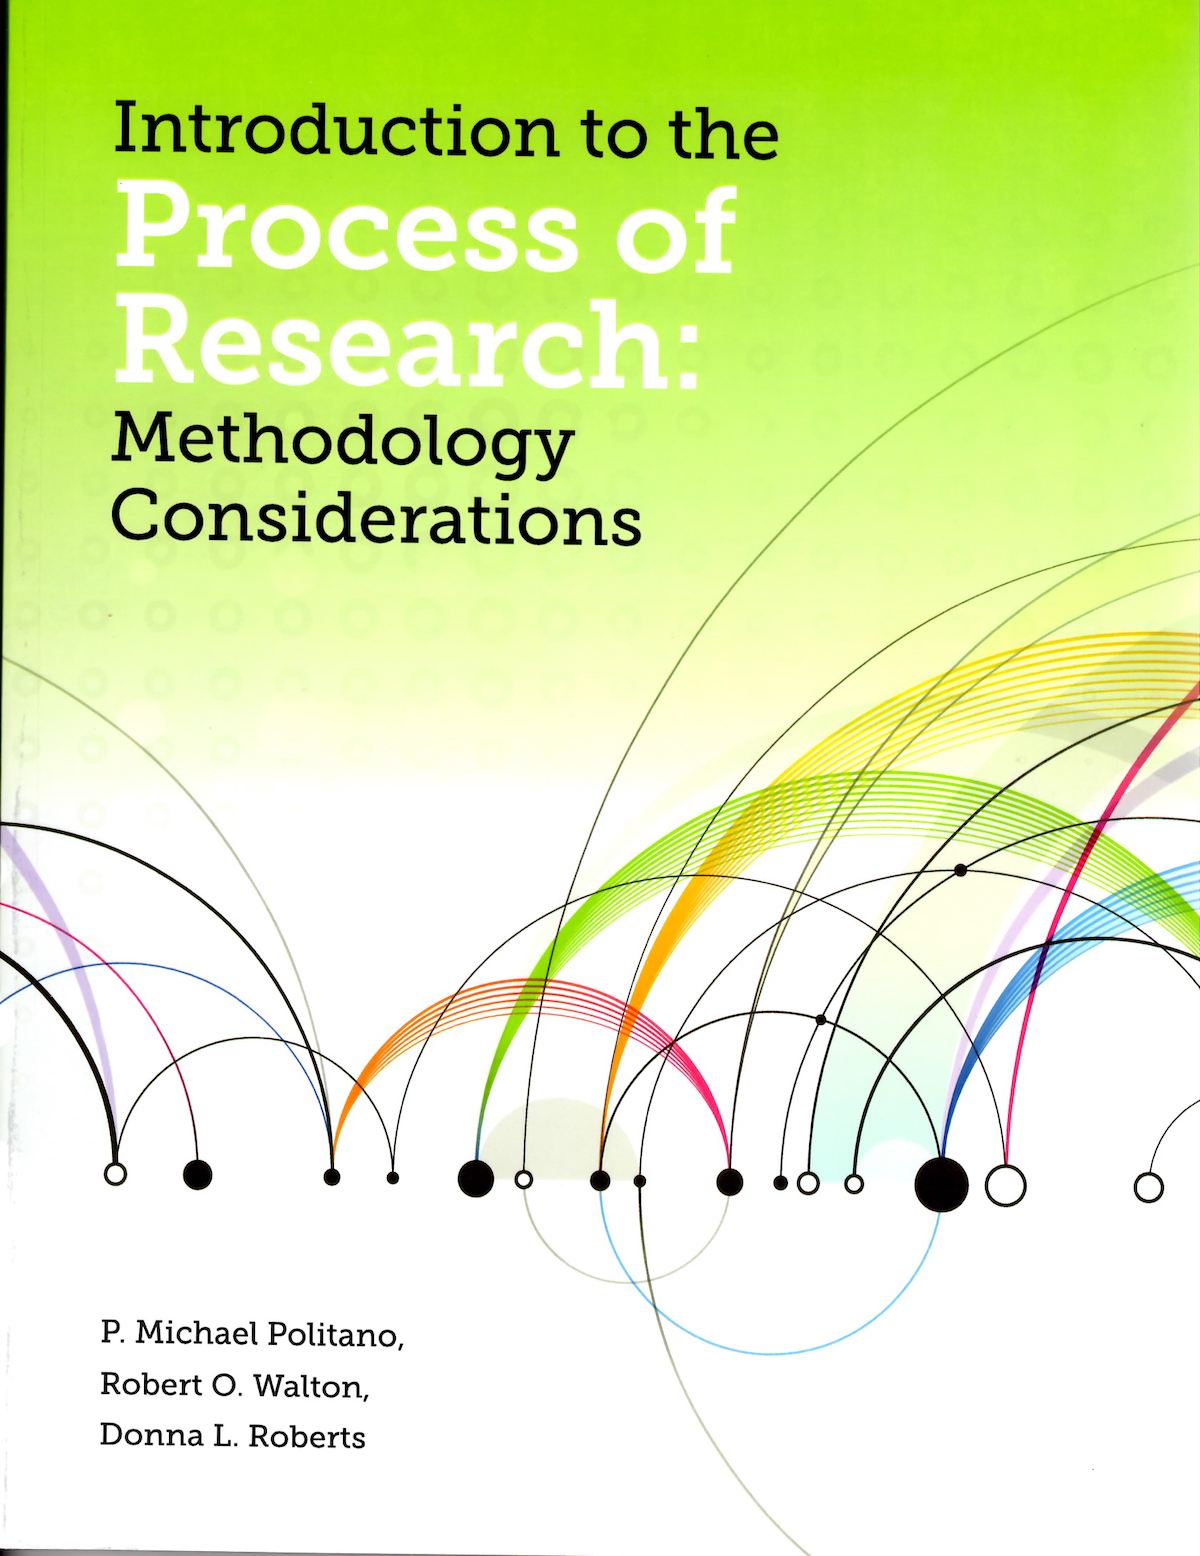 intro-process-of-research